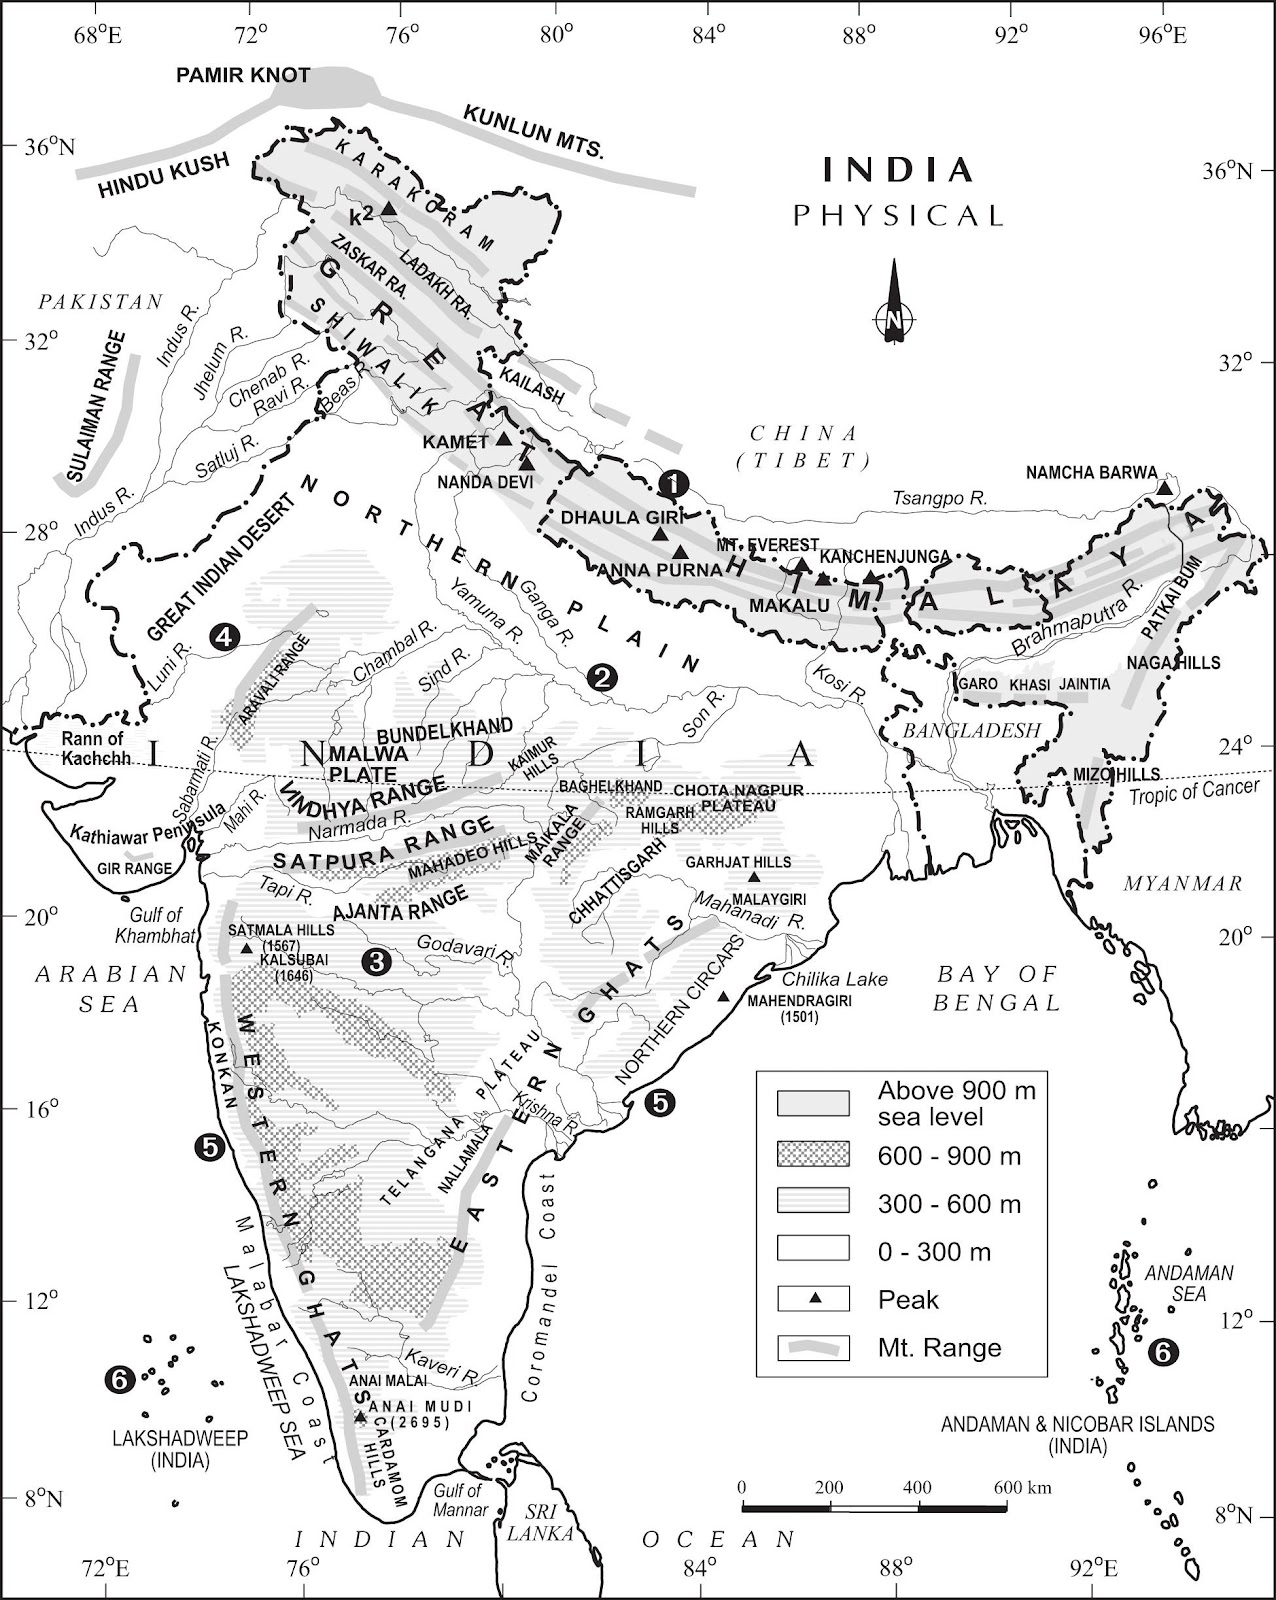 CURRENT TITBITS: INDIA PHYSICAL NCERT